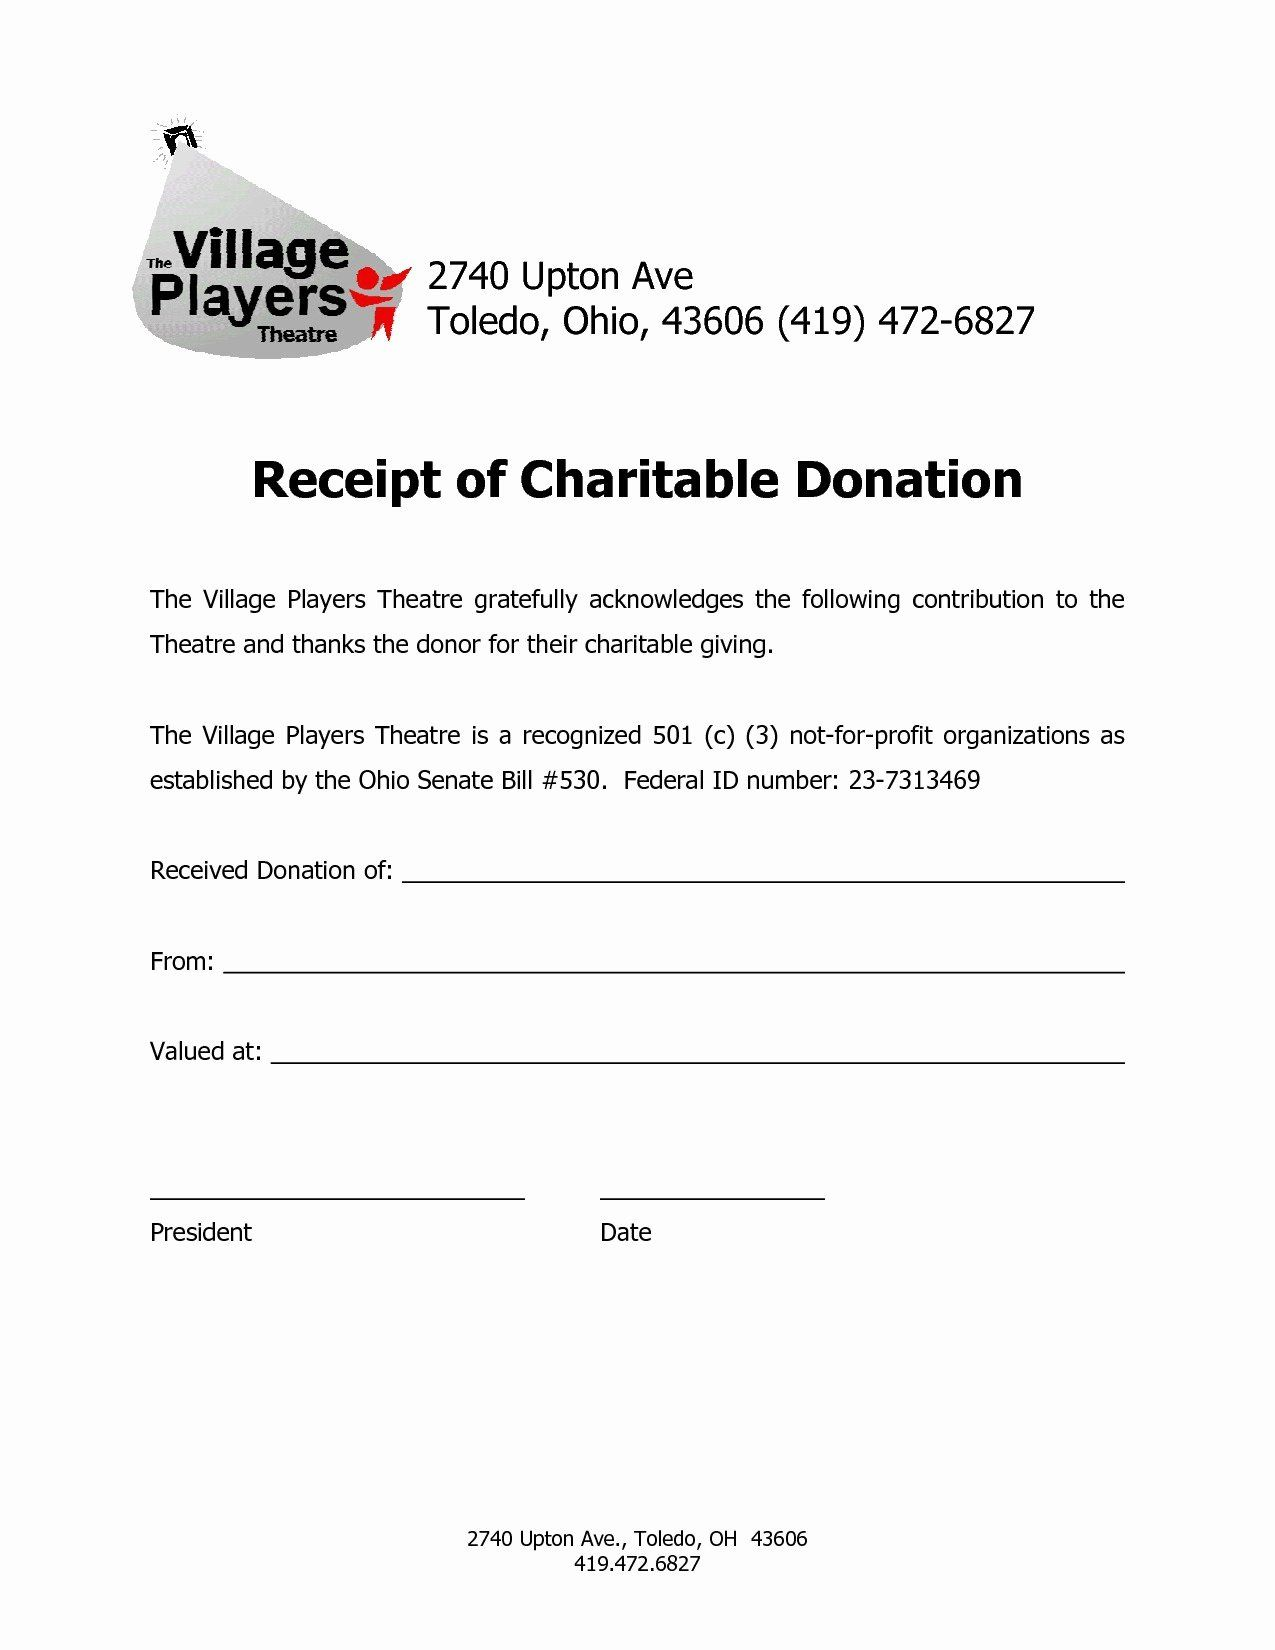 Charitable Contribution Letter Template Fresh Non Profit Tax Deduction Letter Template Collection In 2020 Receipt Template Lettering Donation Letter Keep track of charitable donations